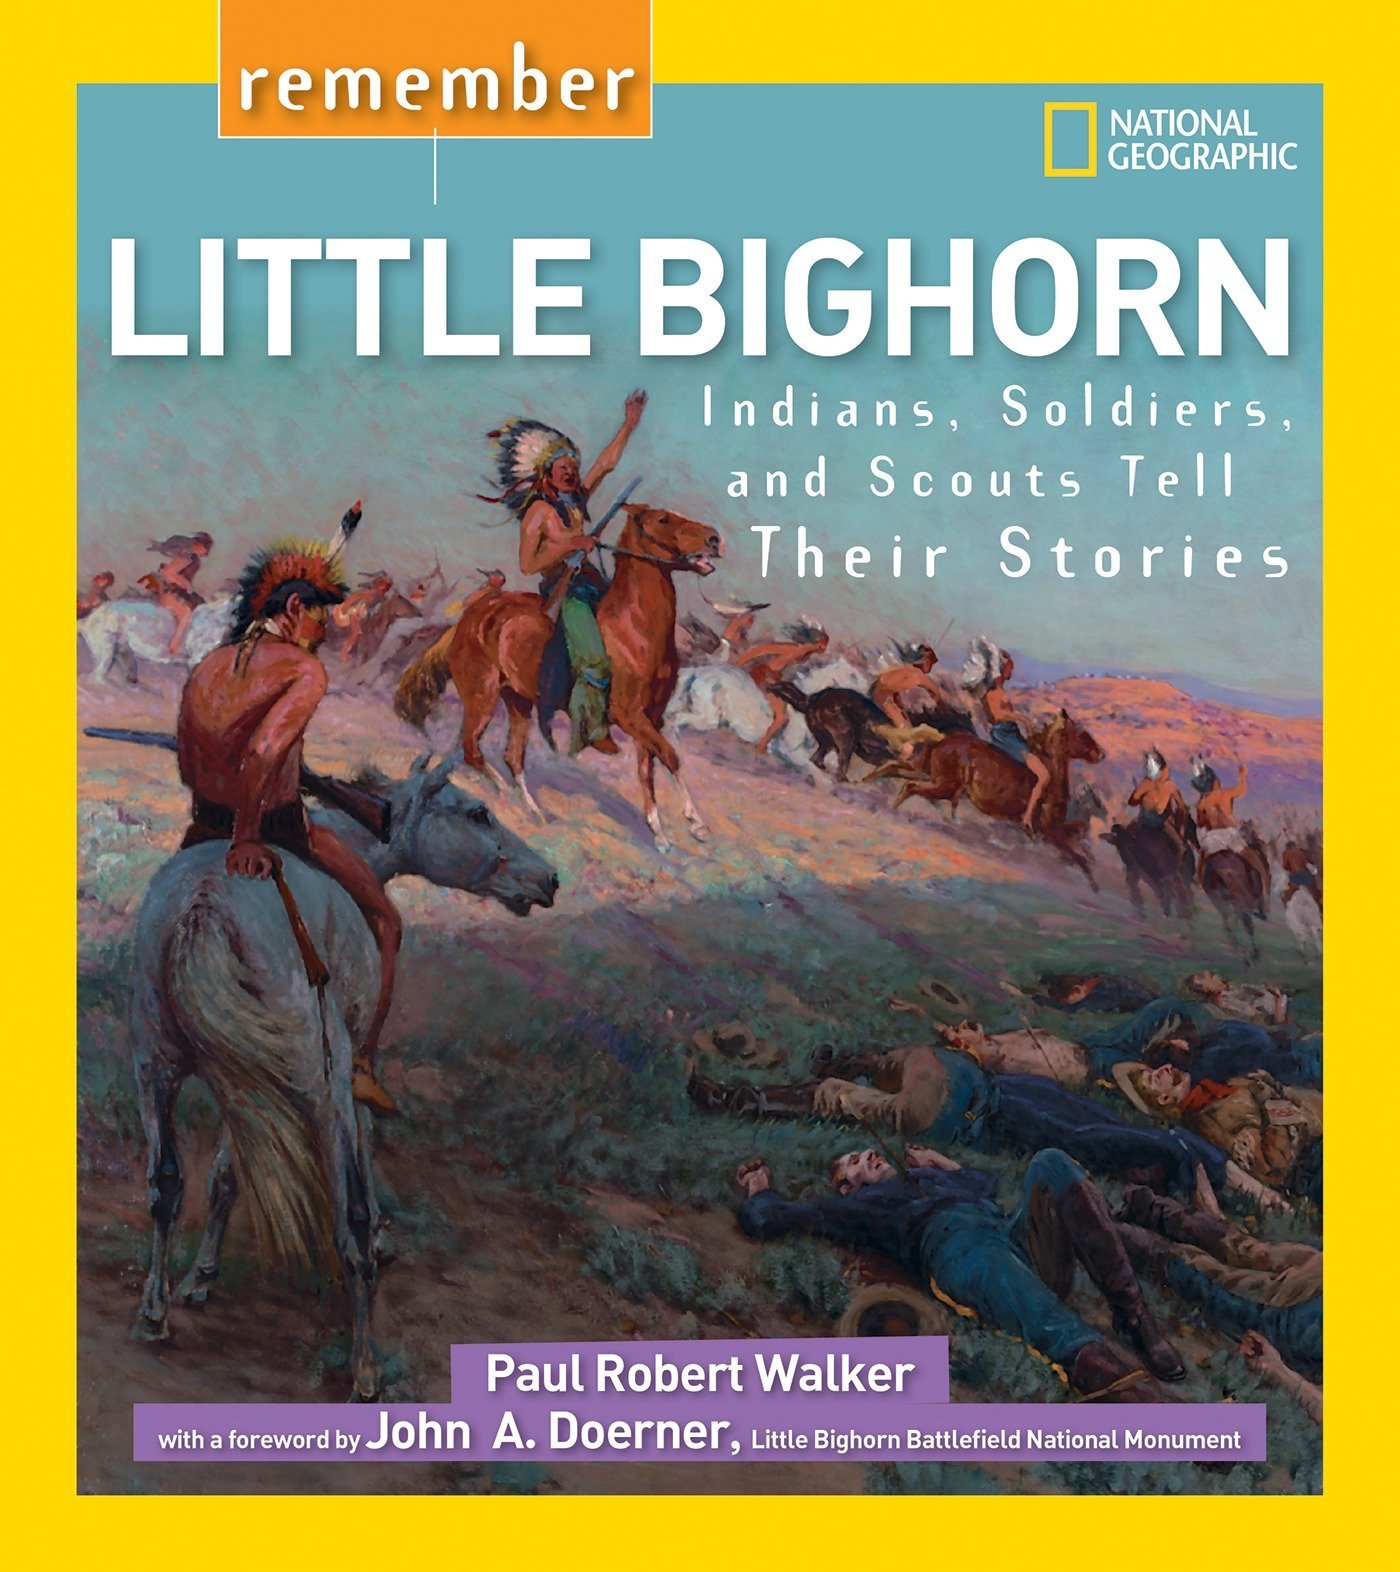 Remember Little Bighorn: Indians, Soldiers, and Scouts Tell Their Stories (Remember...conflicts) pdf